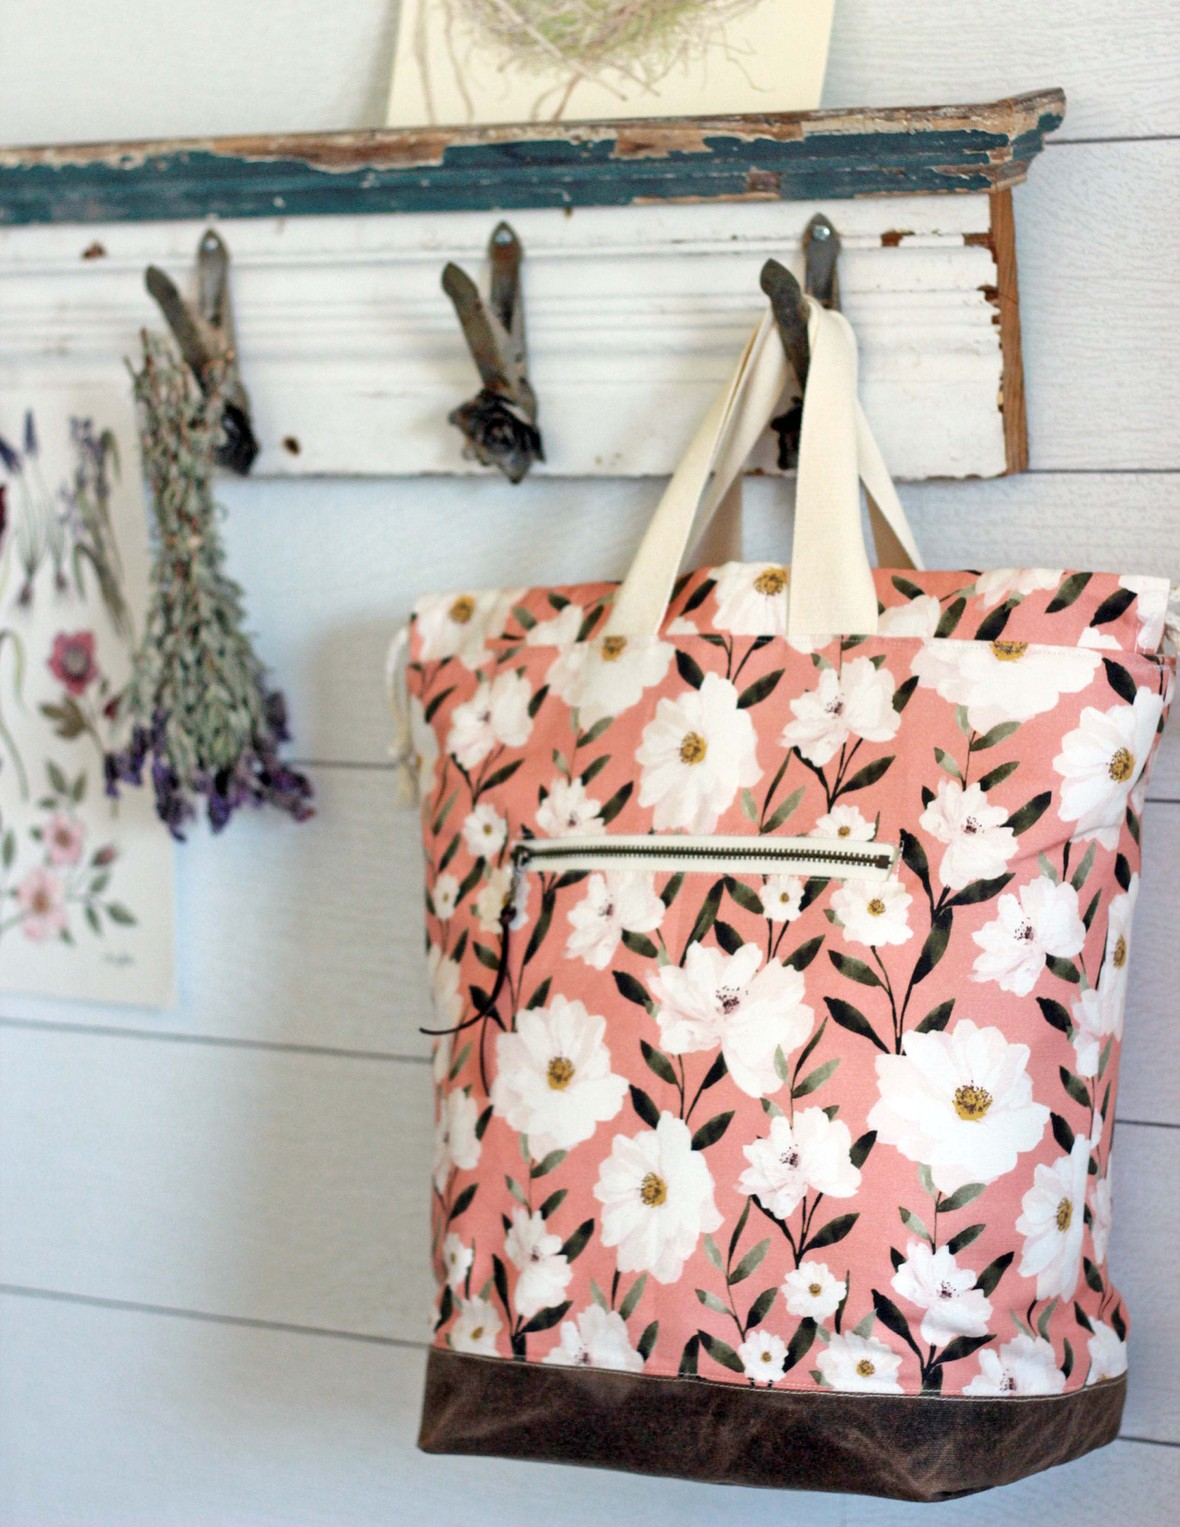 Desert Rose Fabric at Hawthorne Supply Co Indy Bloom